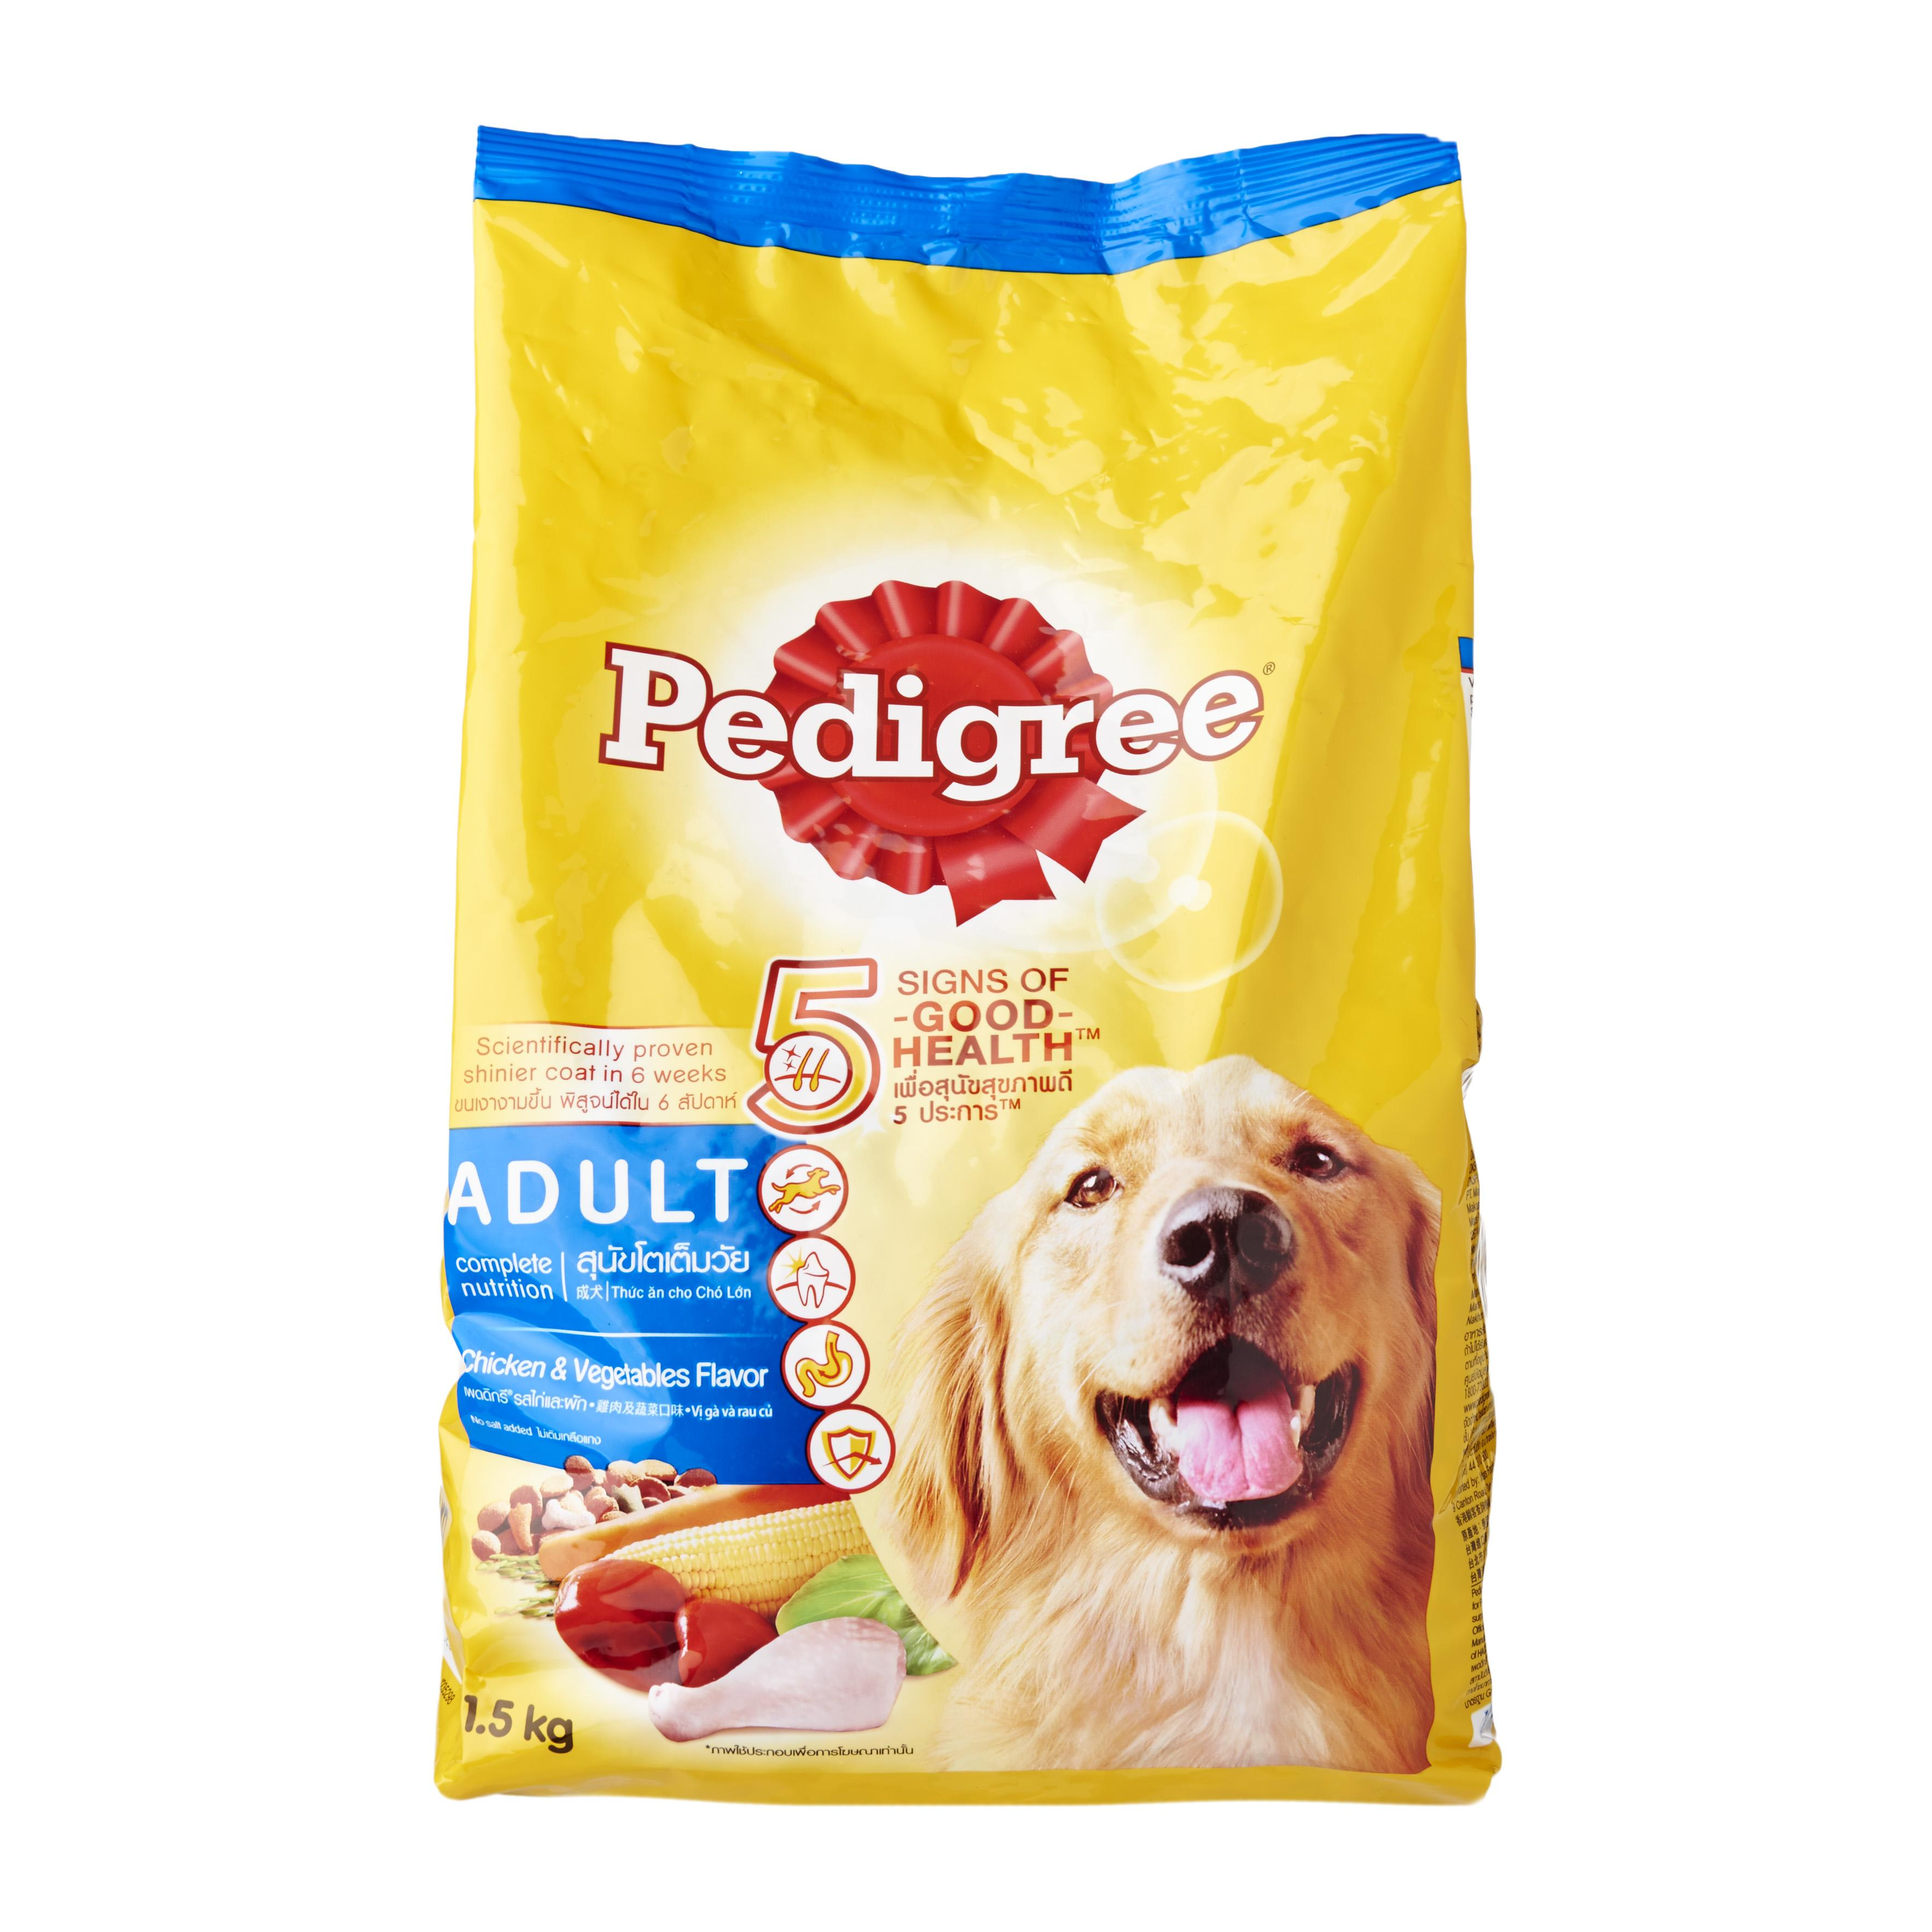 Pedigree Adult Complete Nutrition Chicken and Vegetable Dry Dog Food